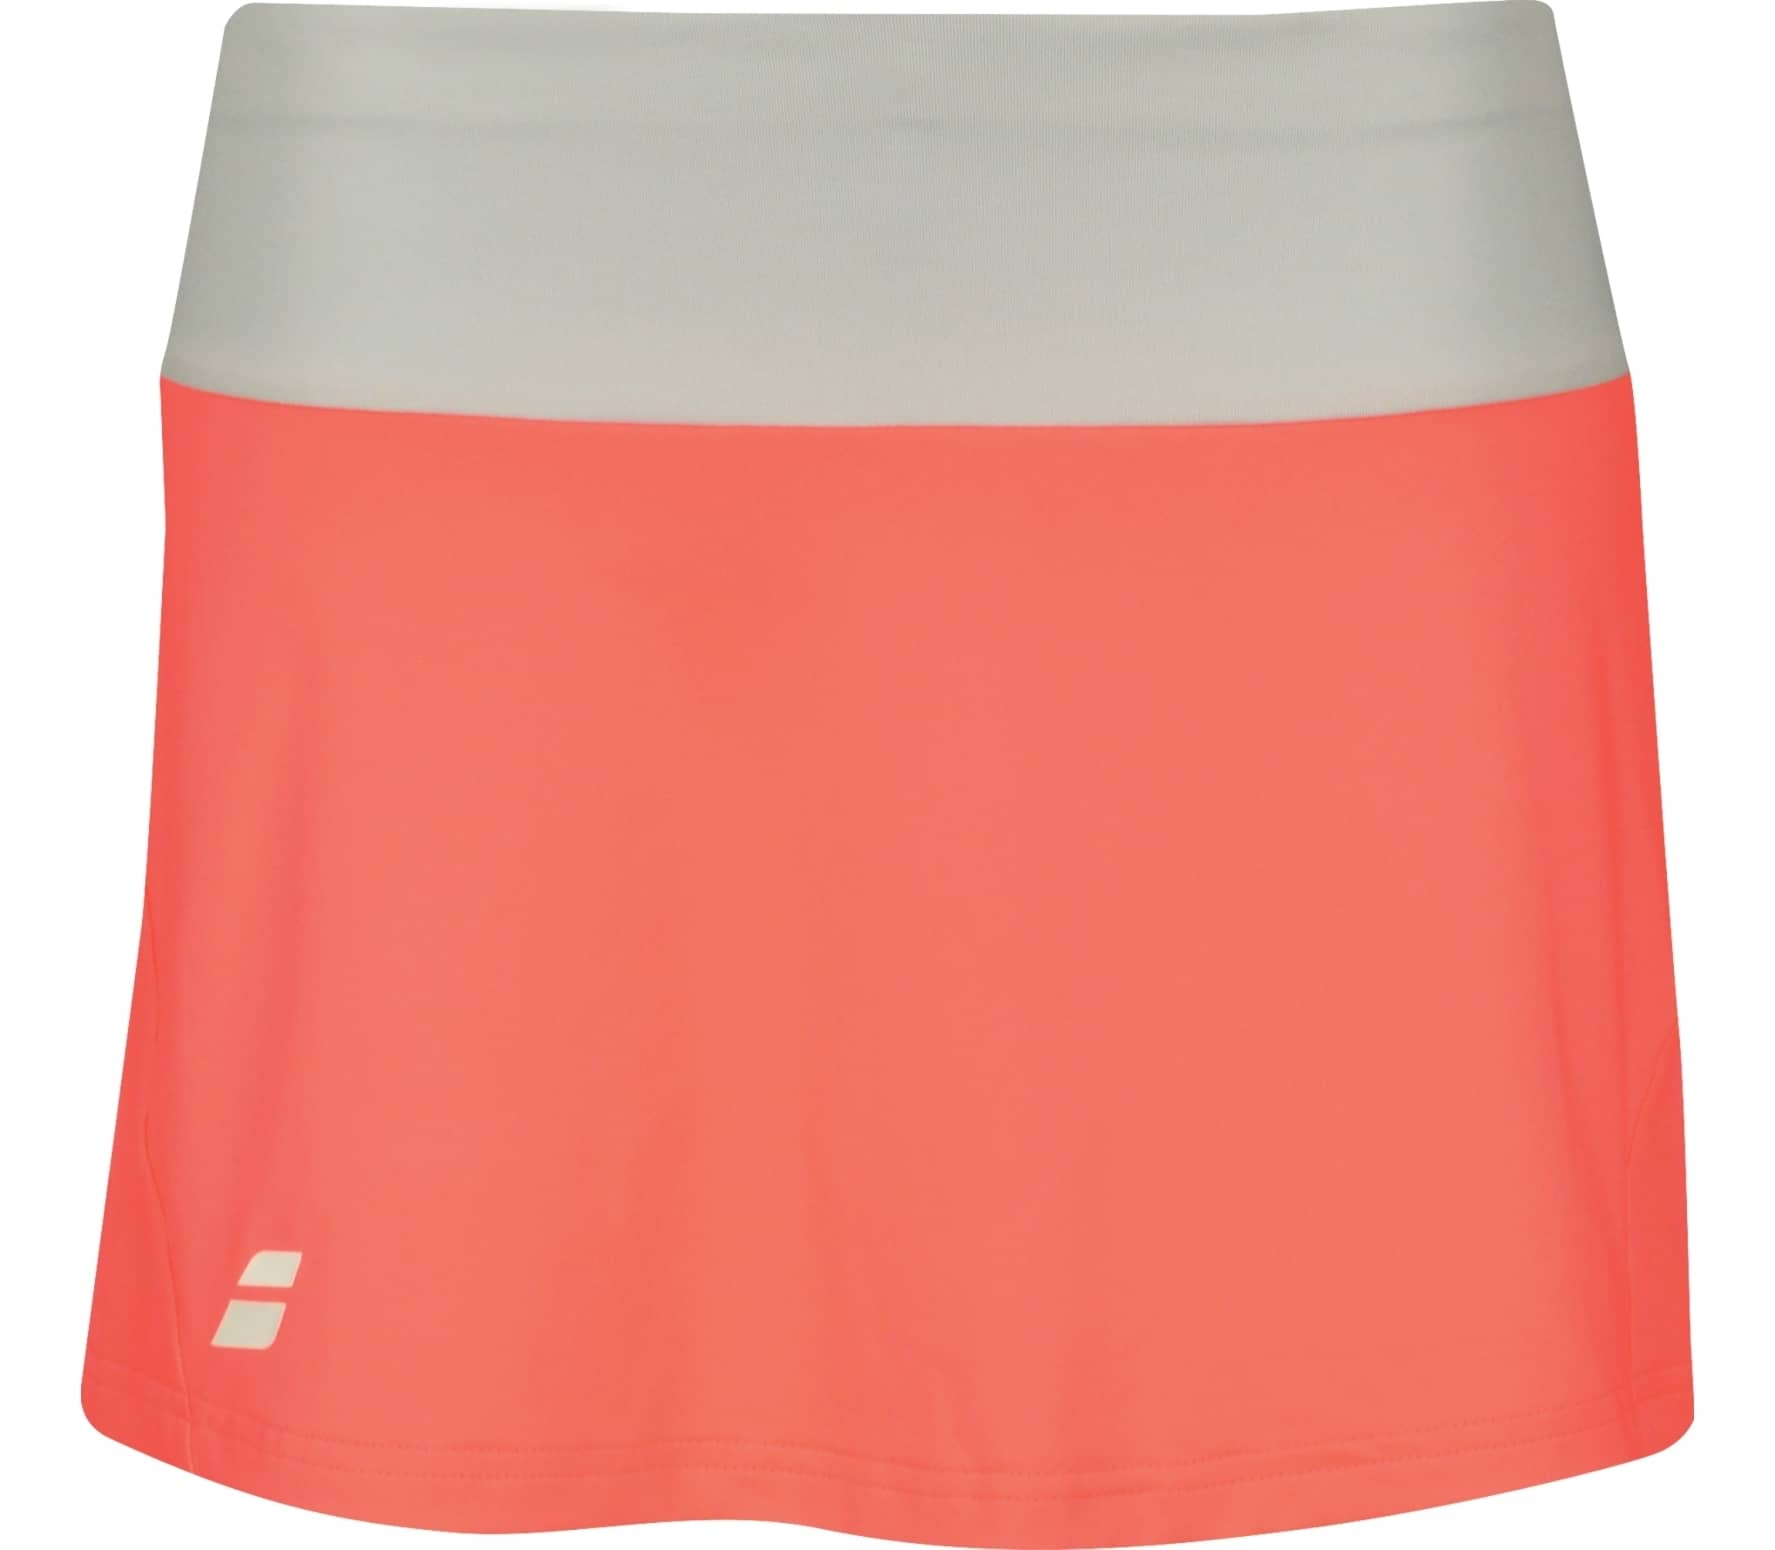 9fade7237c Babolat - Core women's tennis skirt (coral) - buy it at the Keller ...